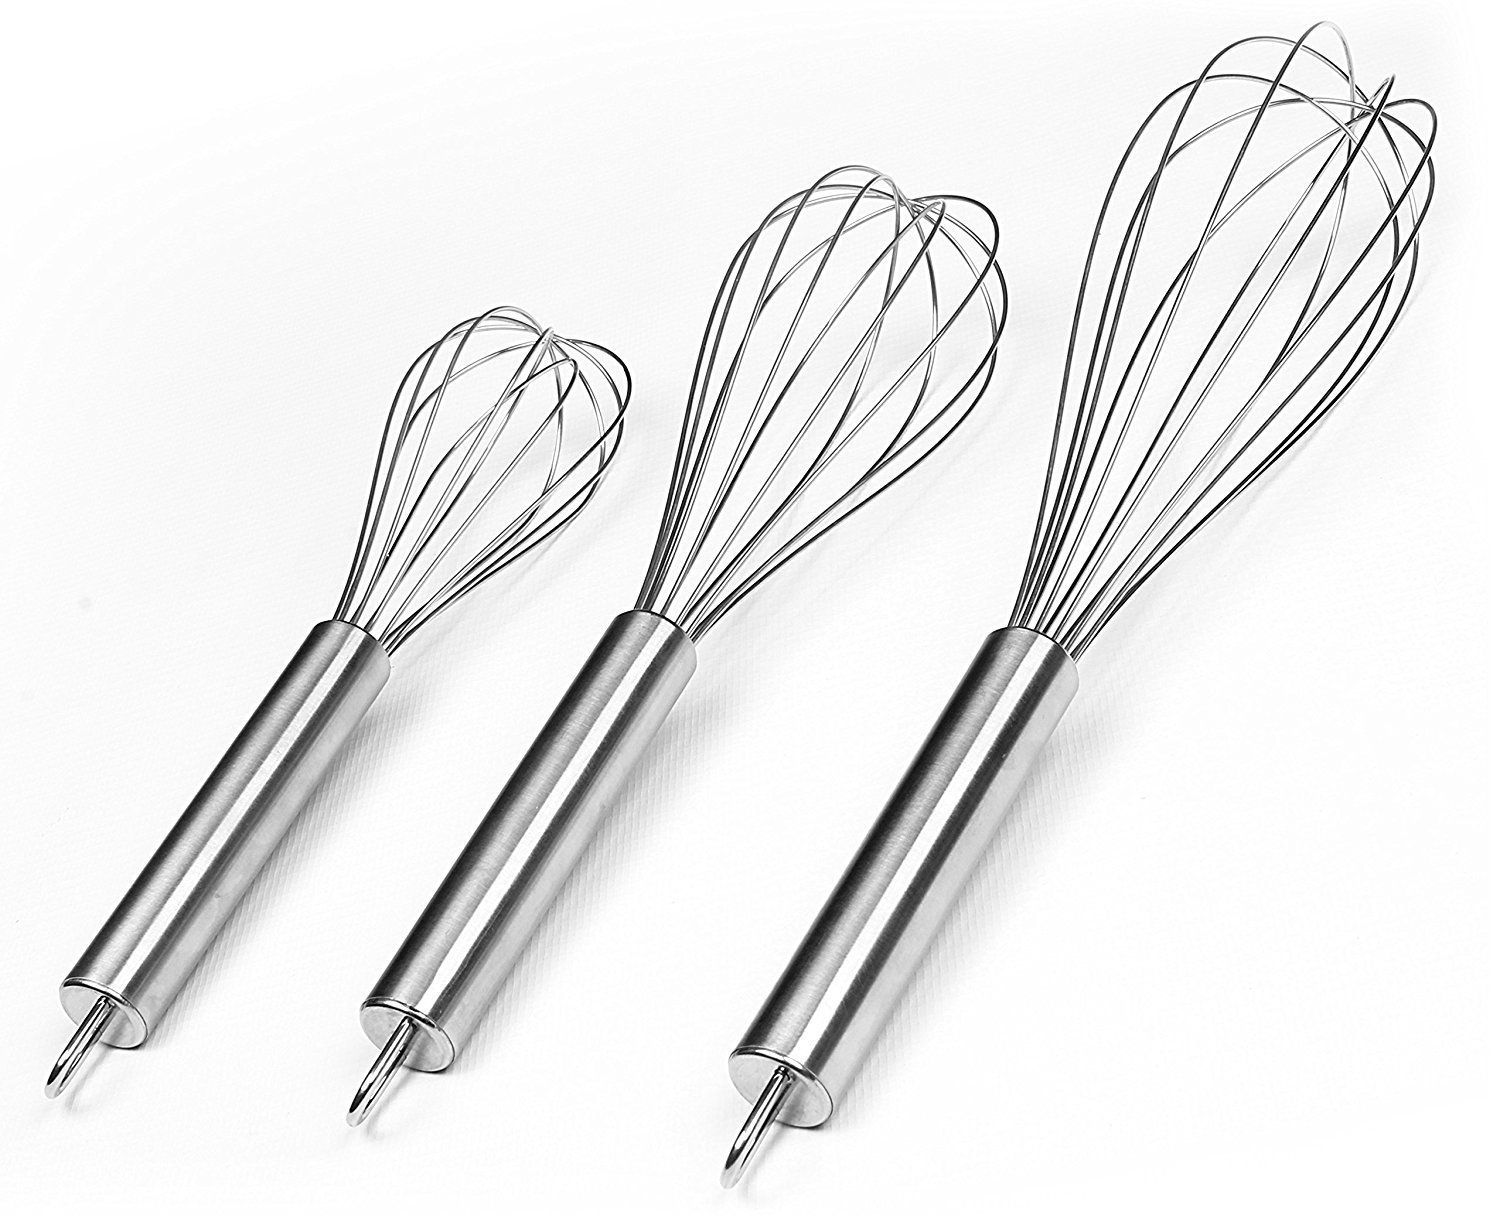 Amazon.com: Stainless Steel Whisk Set - Wire Whisk - Balloon Whisk ...